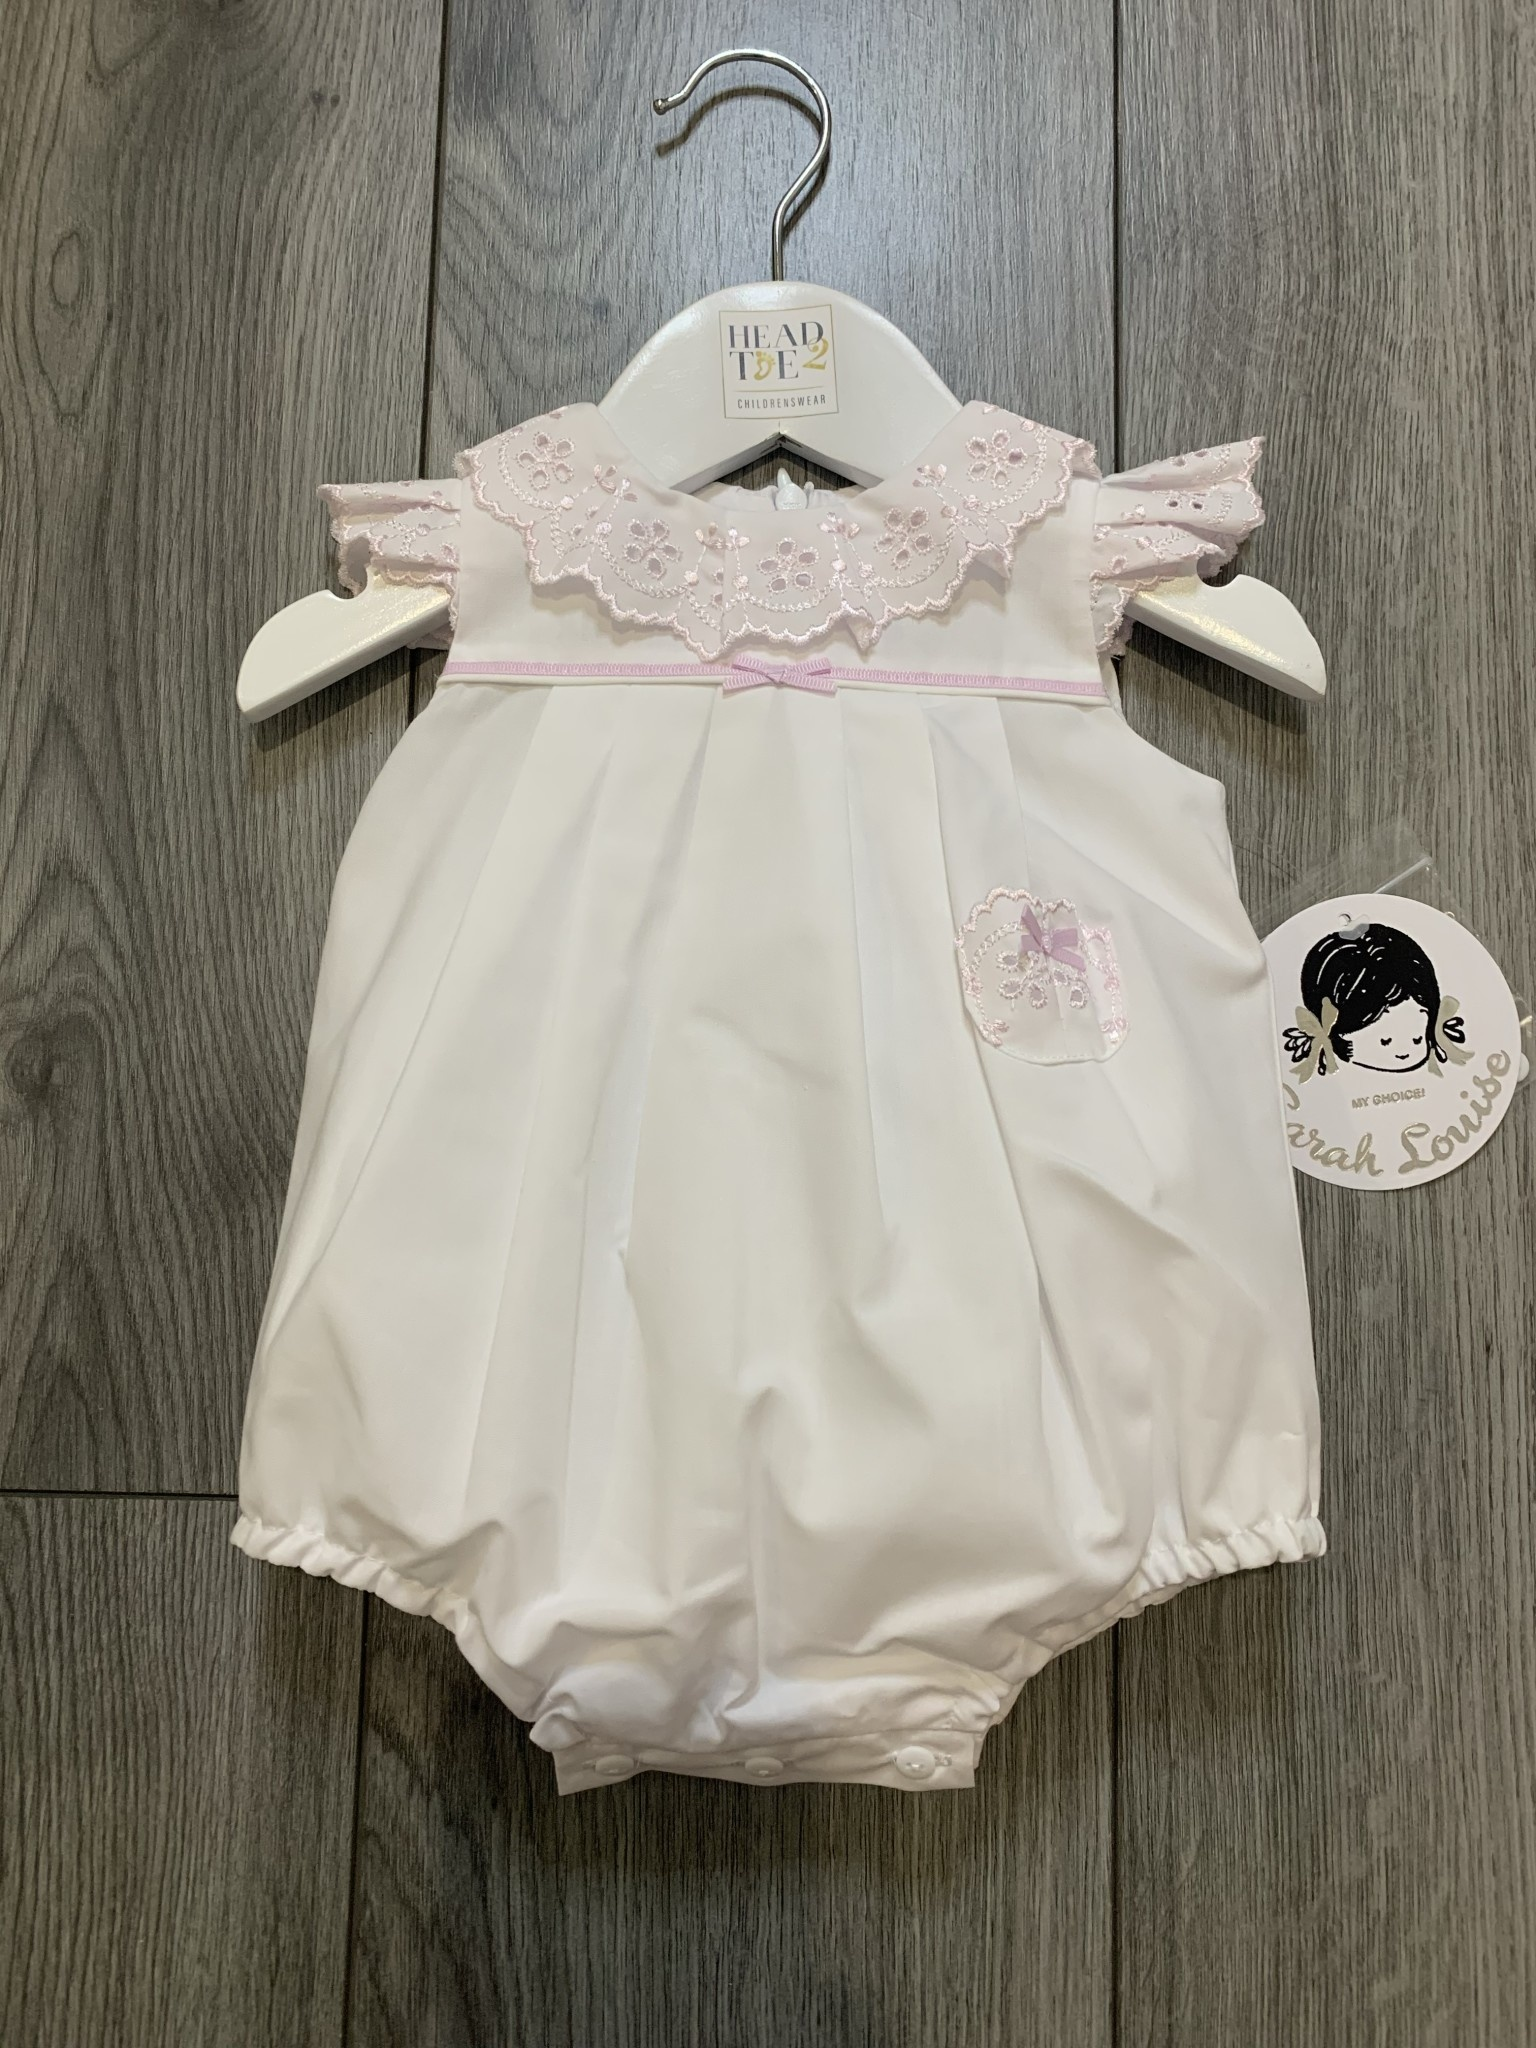 Sarah Louise Sarah Louise SS20 White and Pink Romper 011877